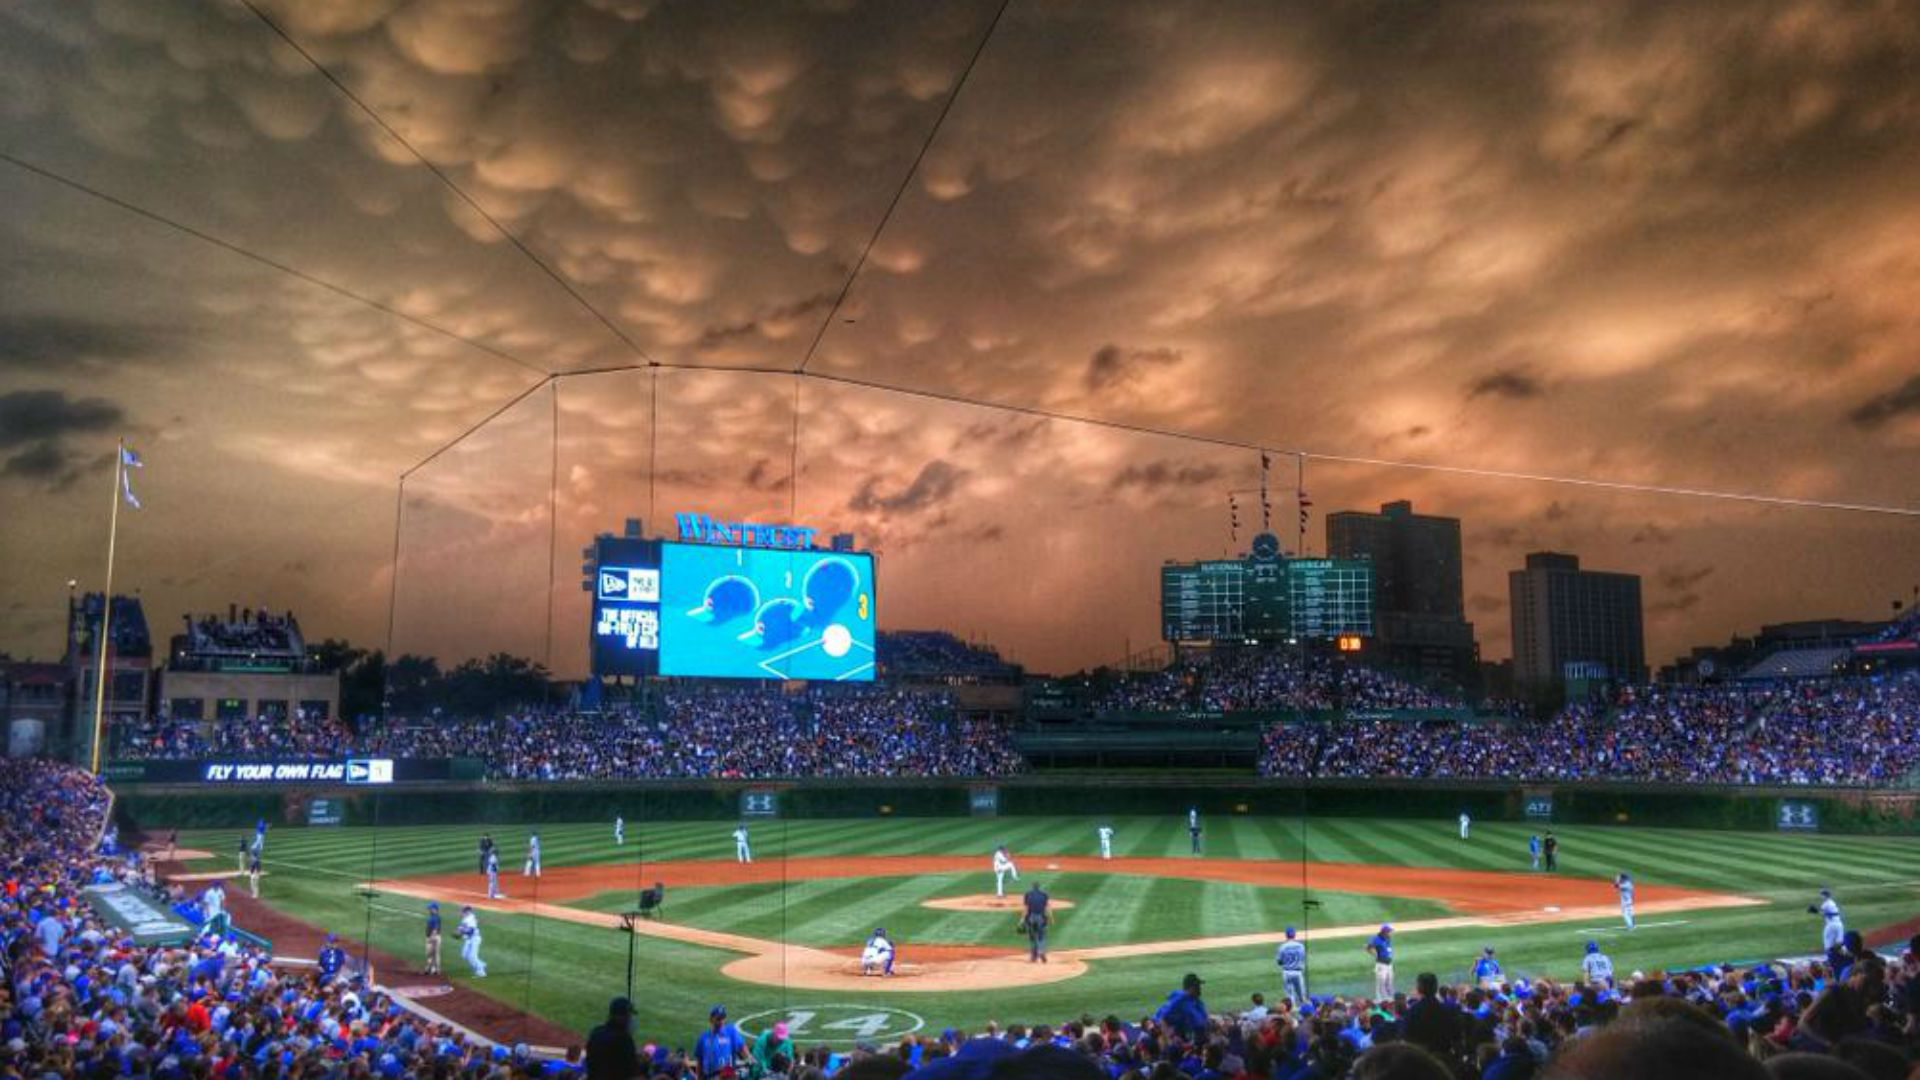 Wrigley Field Sky Looks Like Scene From Disaster Movie Wrigley Field Chicago Sports Chicago Cubs